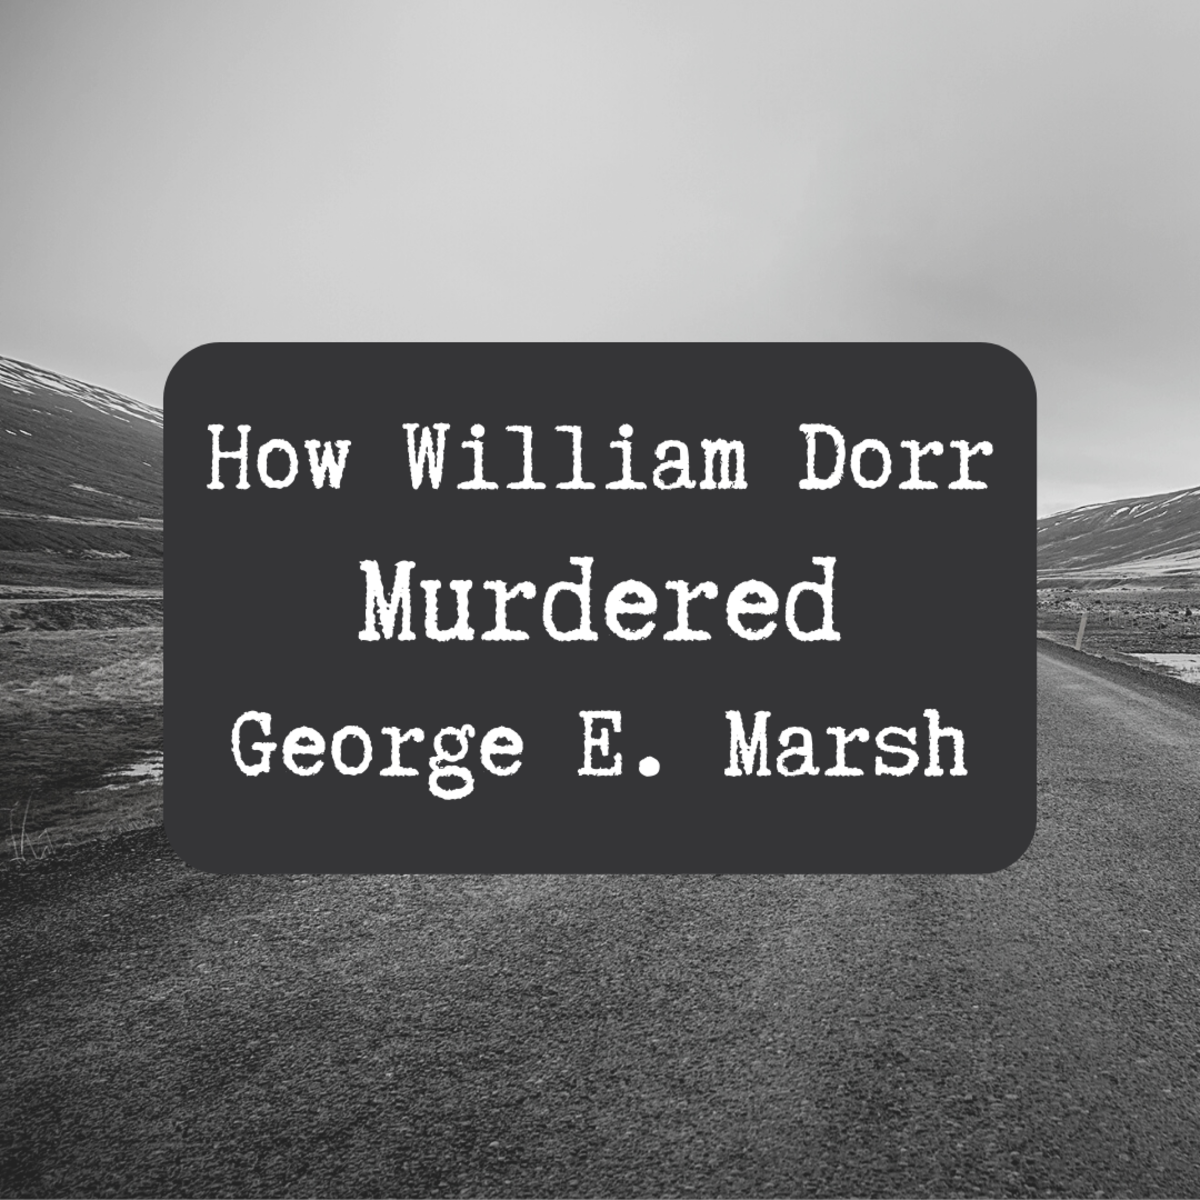 The Murder of George E. Marsh by William Dorr